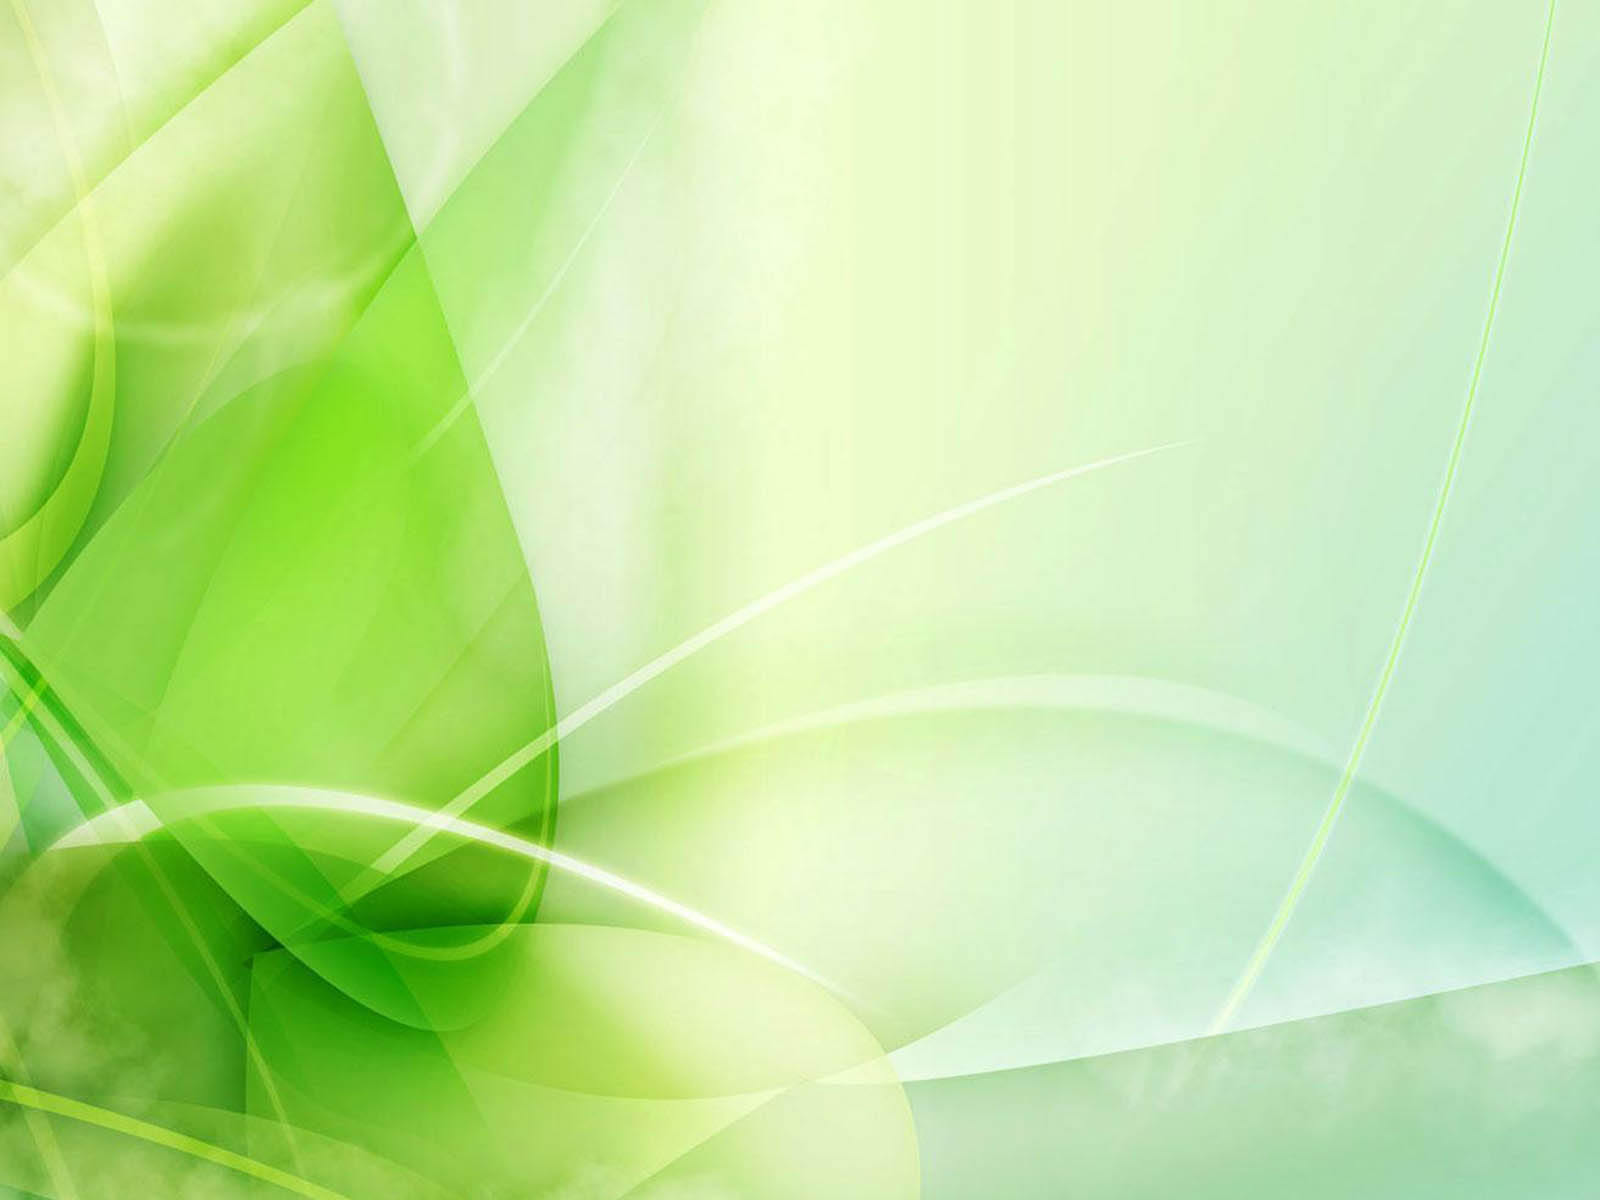 green abstract wallpapers backgrounds photos pictures and images for ...